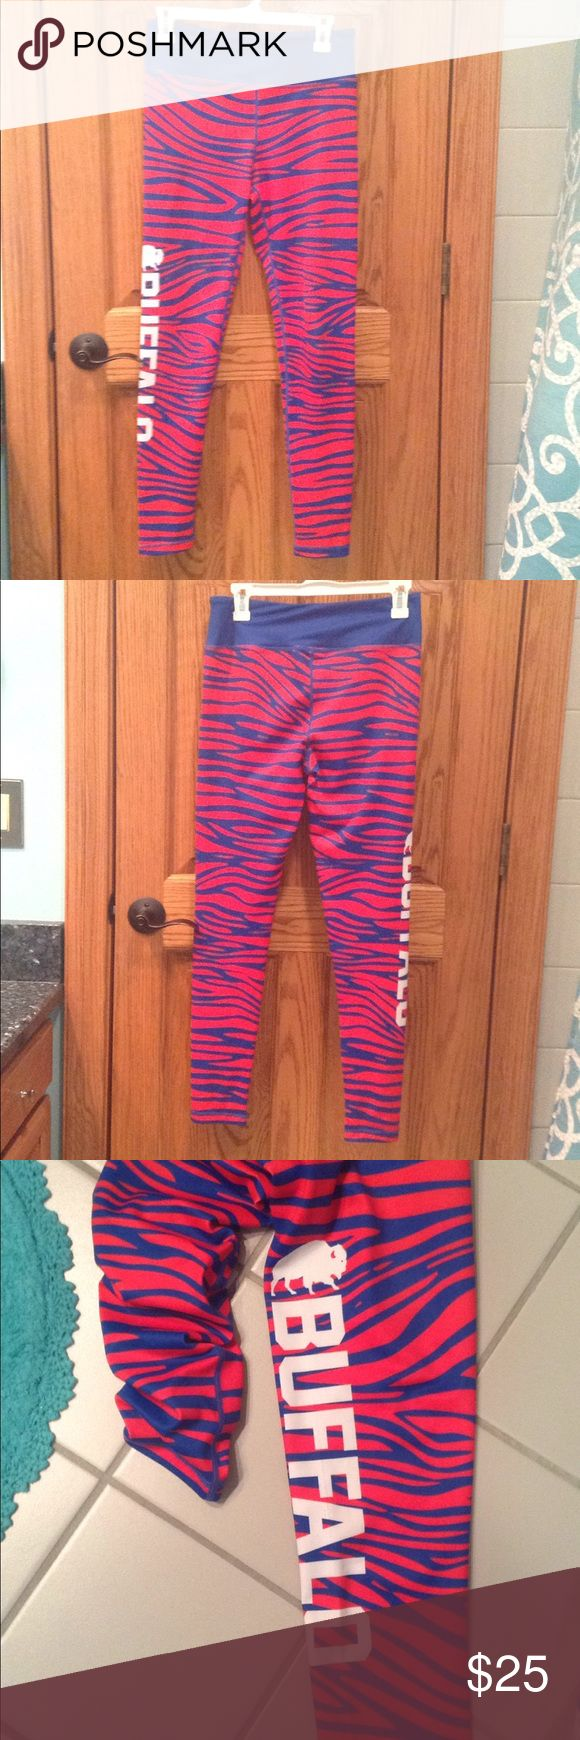 "Buffalo Bills Zebra Print Leggings Women's Buffalo Bills Zebra Print Leggings- size medium. Full length legging, moisture wicking fabric. True to size. Waist 14,"" length 37,"" inseam 28,"" and rise 10."" Preowned gently used. Store 716 Pants Leggings"